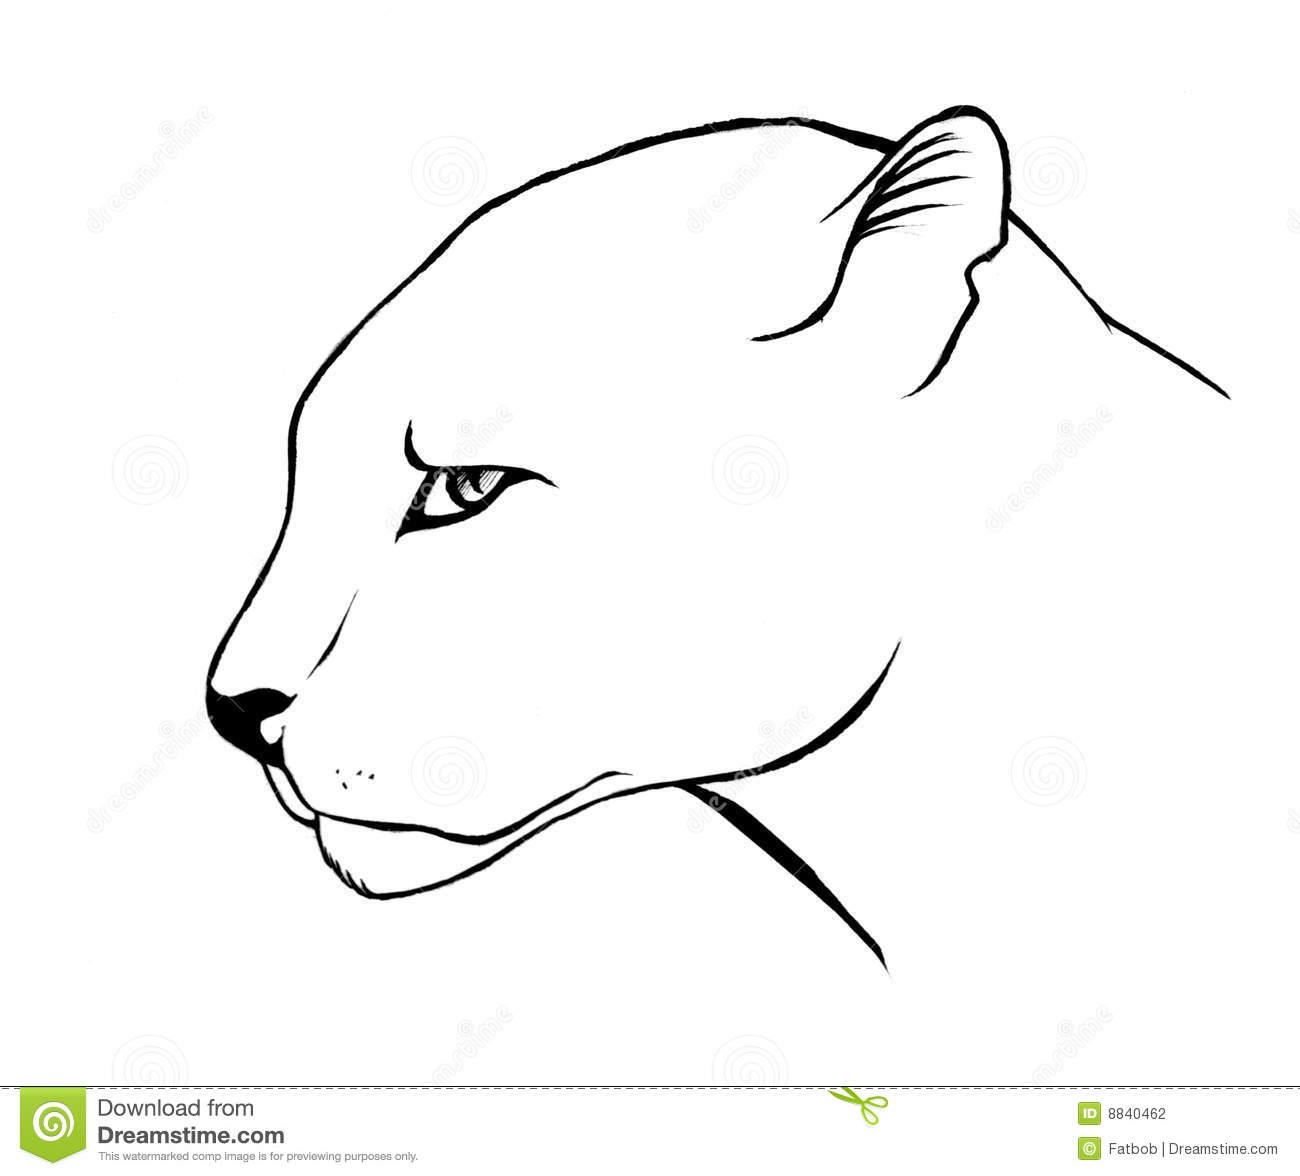 Royalty Free Stock Image Black Panther Furious Jump White Illustration Image34855106 moreover How To Draw Panthers  Black Panthers in addition Claw Tear besides Godzilla 2014 Movie Review as well How To Draw A Leopard For Kids. on black panthers with s